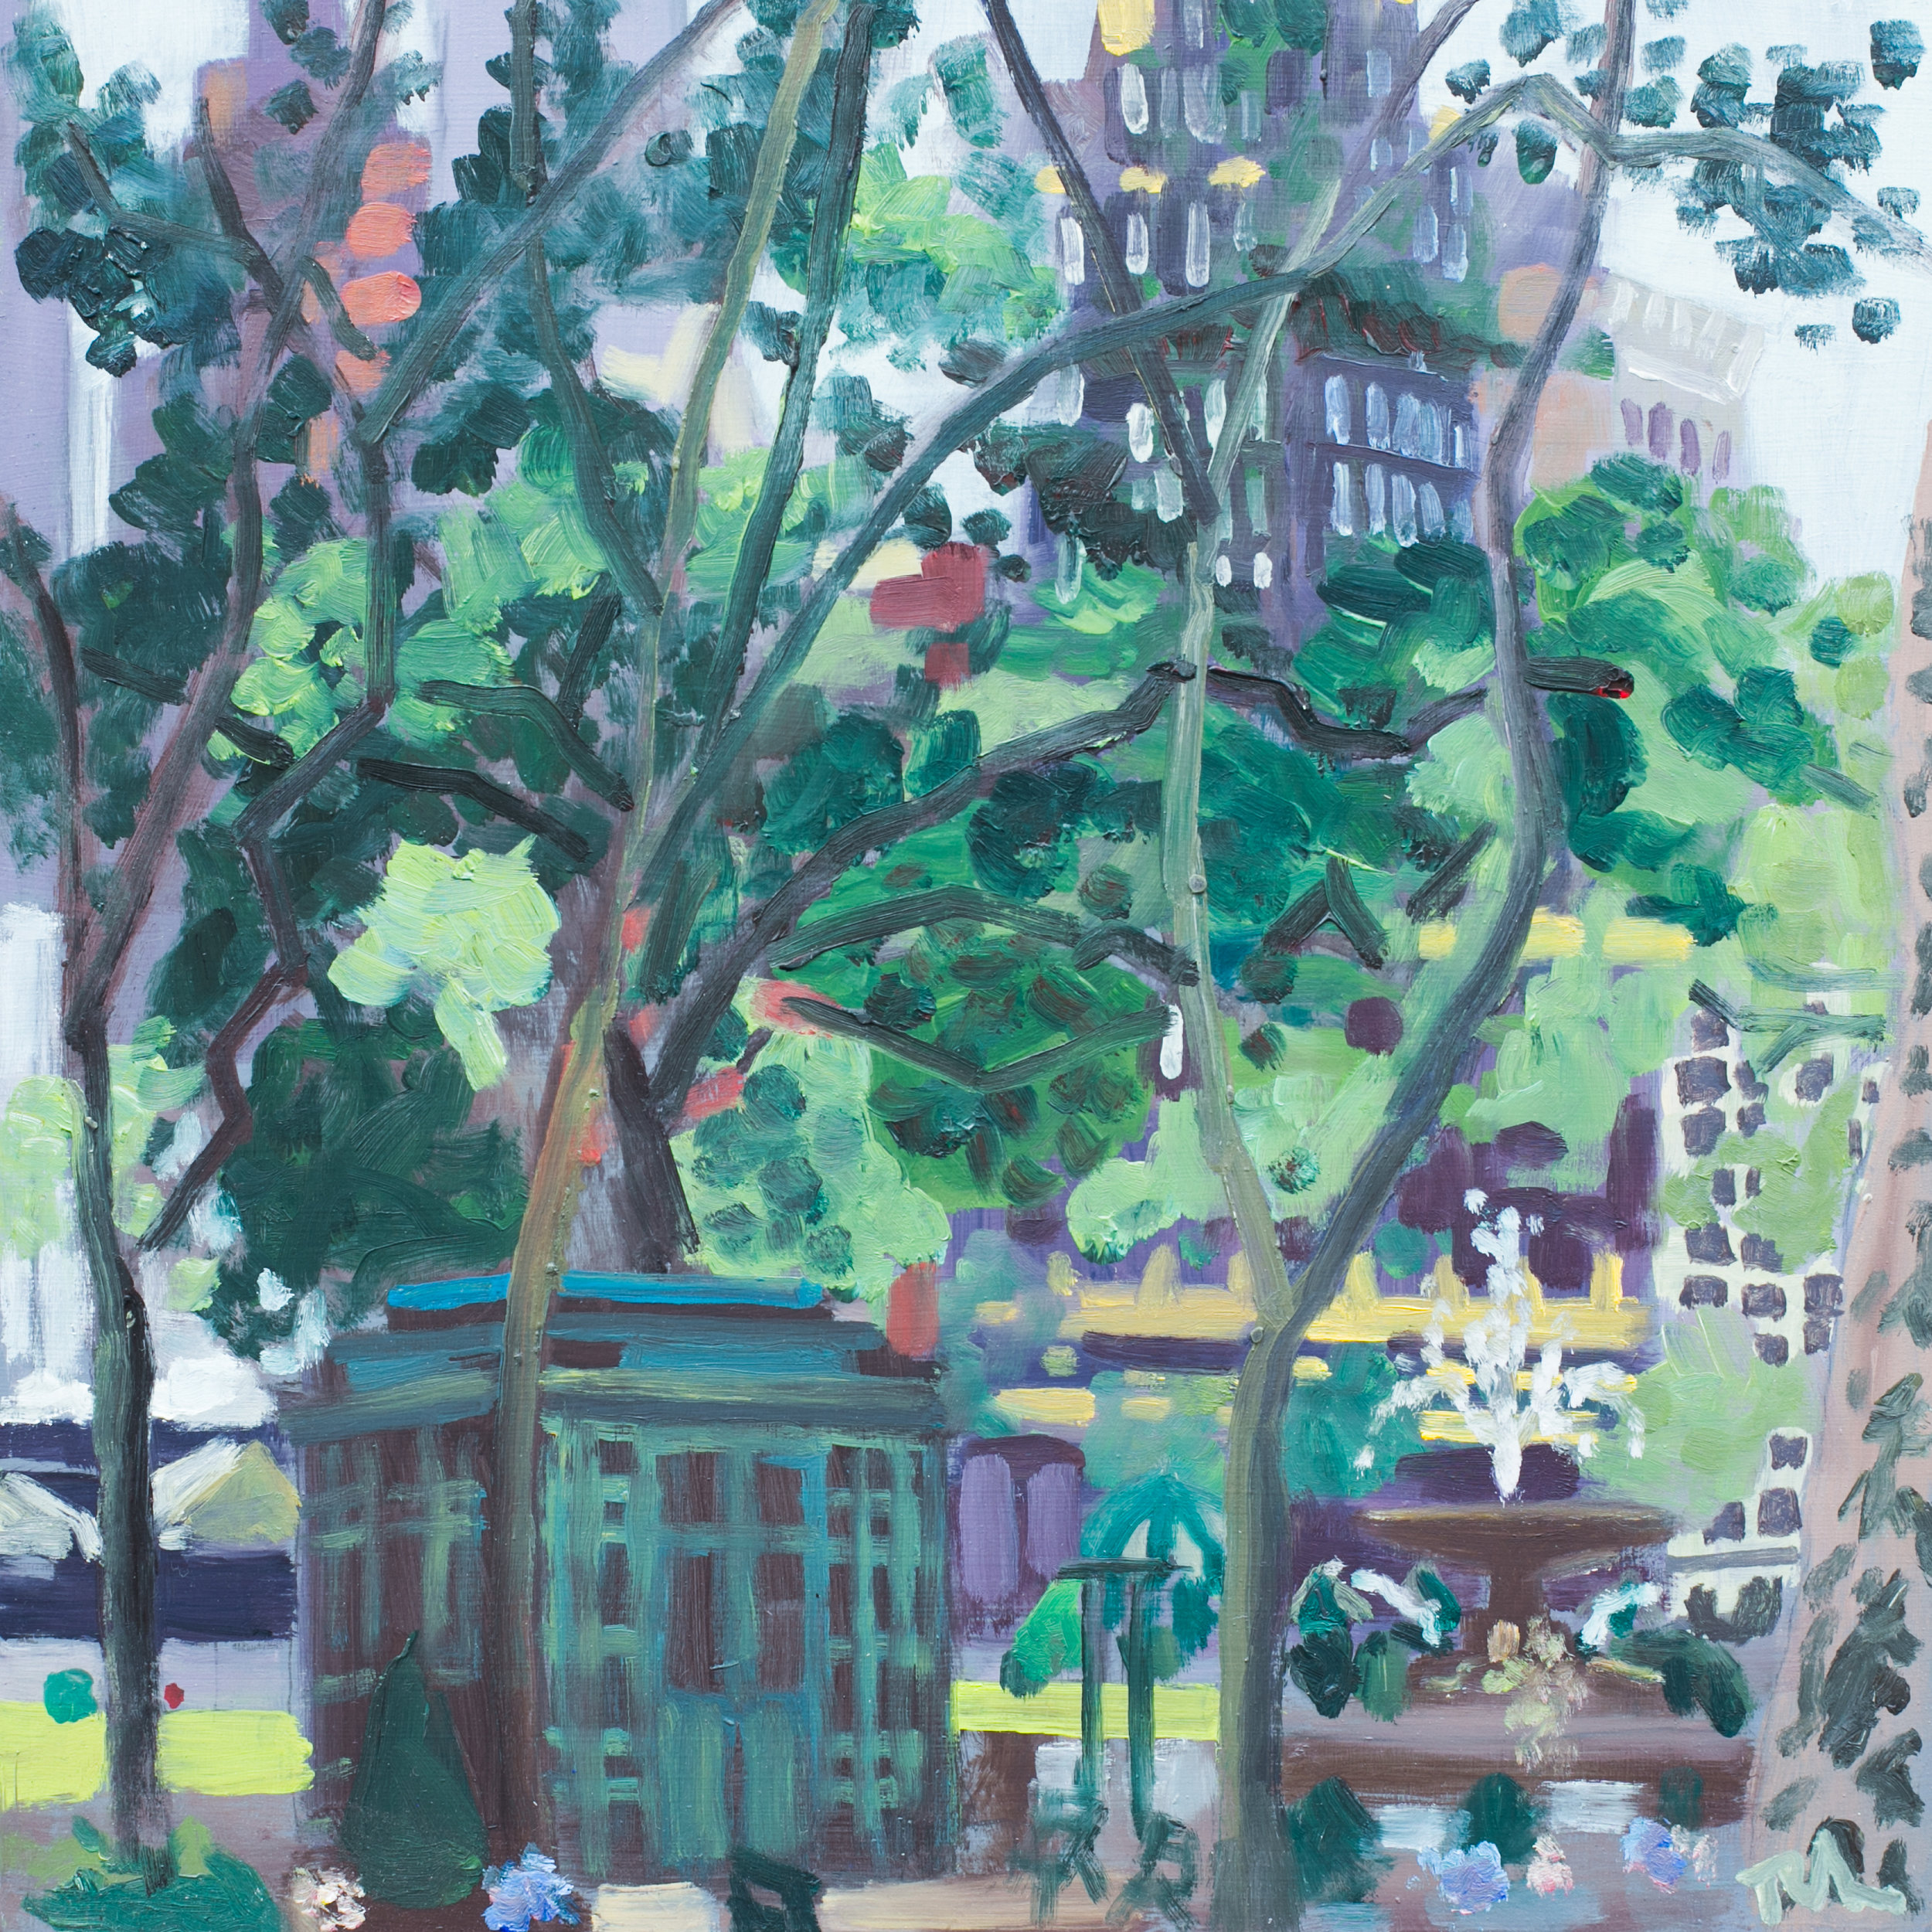 "Bryant Park #5 - May 18, 2016 - 12"" x 12"" - oil on panel"